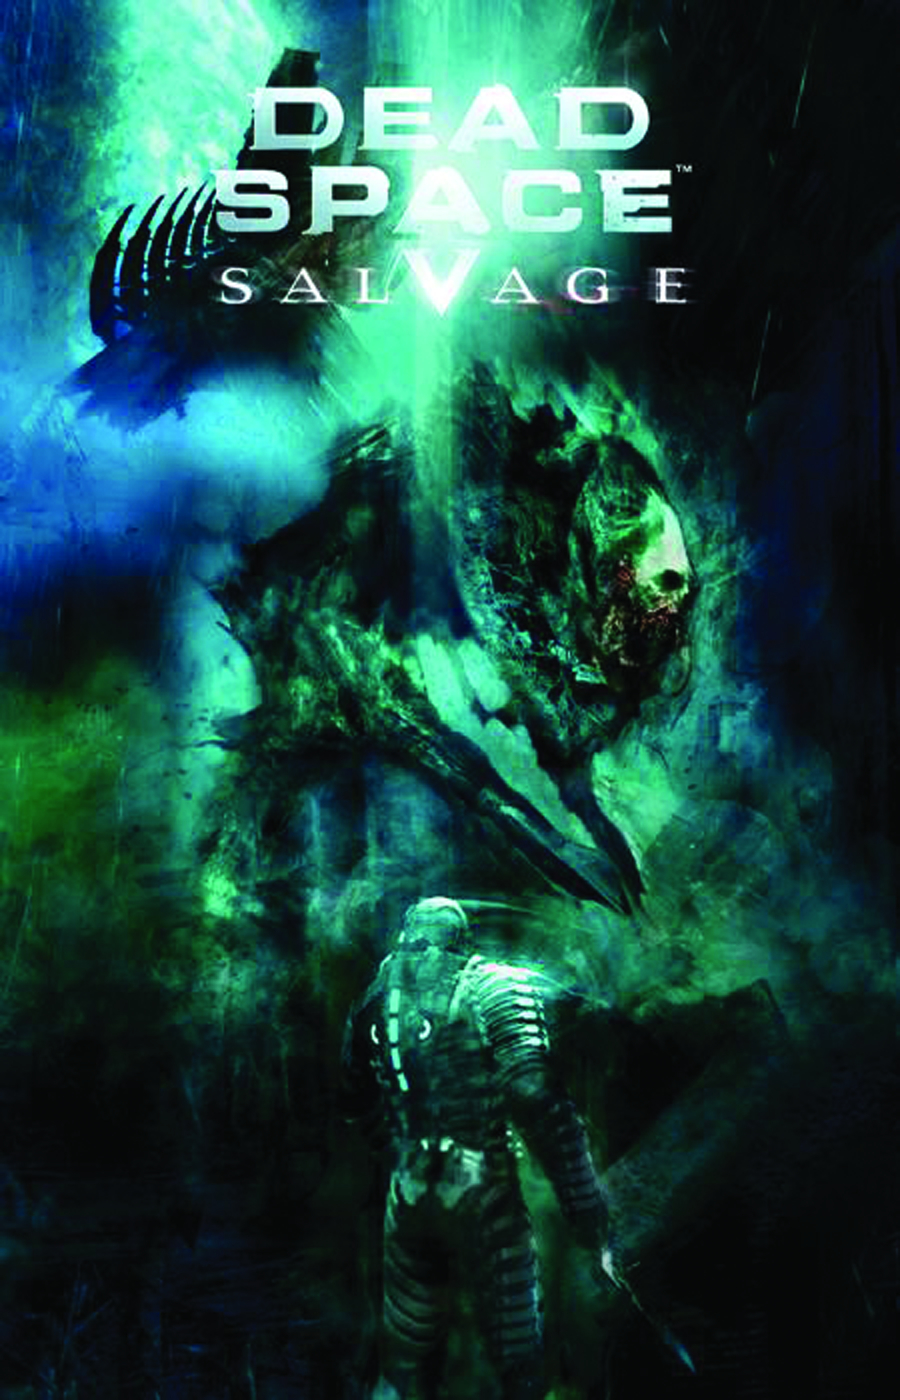 DEAD SPACE SALVAGE TITAN ED TP